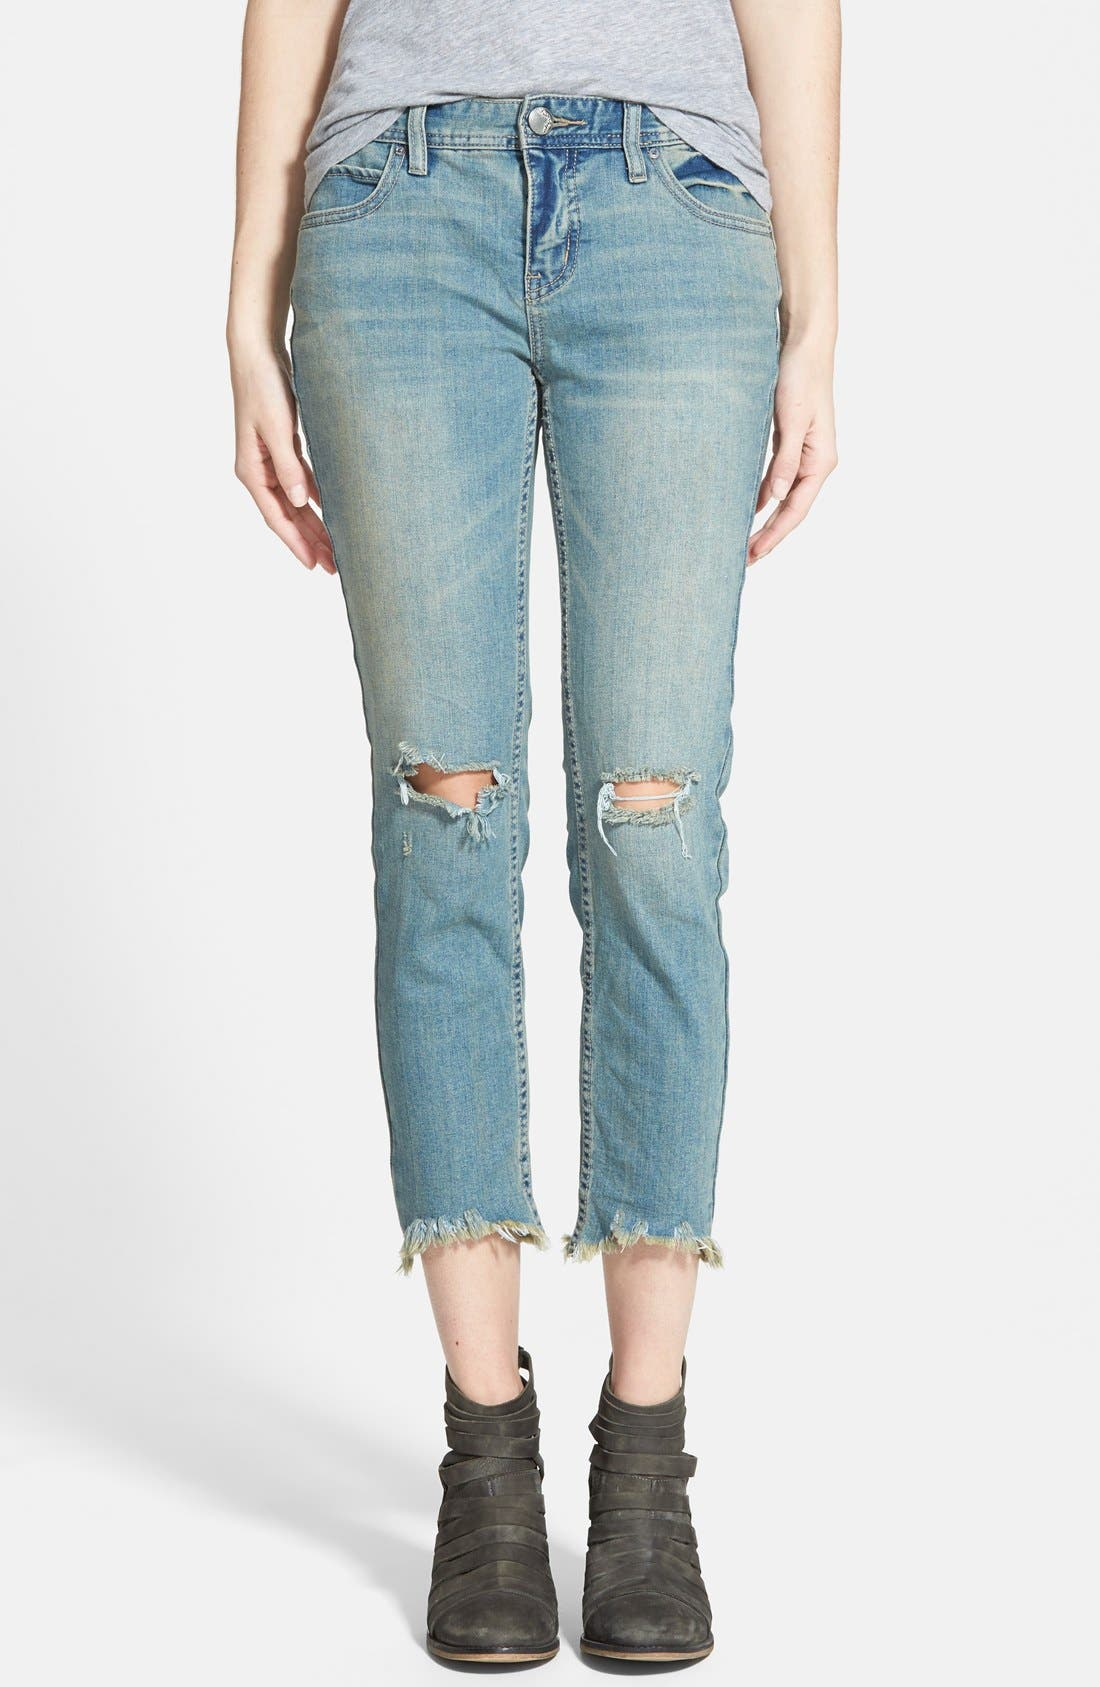 Alternate Image 1 Selected - Free People Destroyed Skinny Jeans (Sitka)